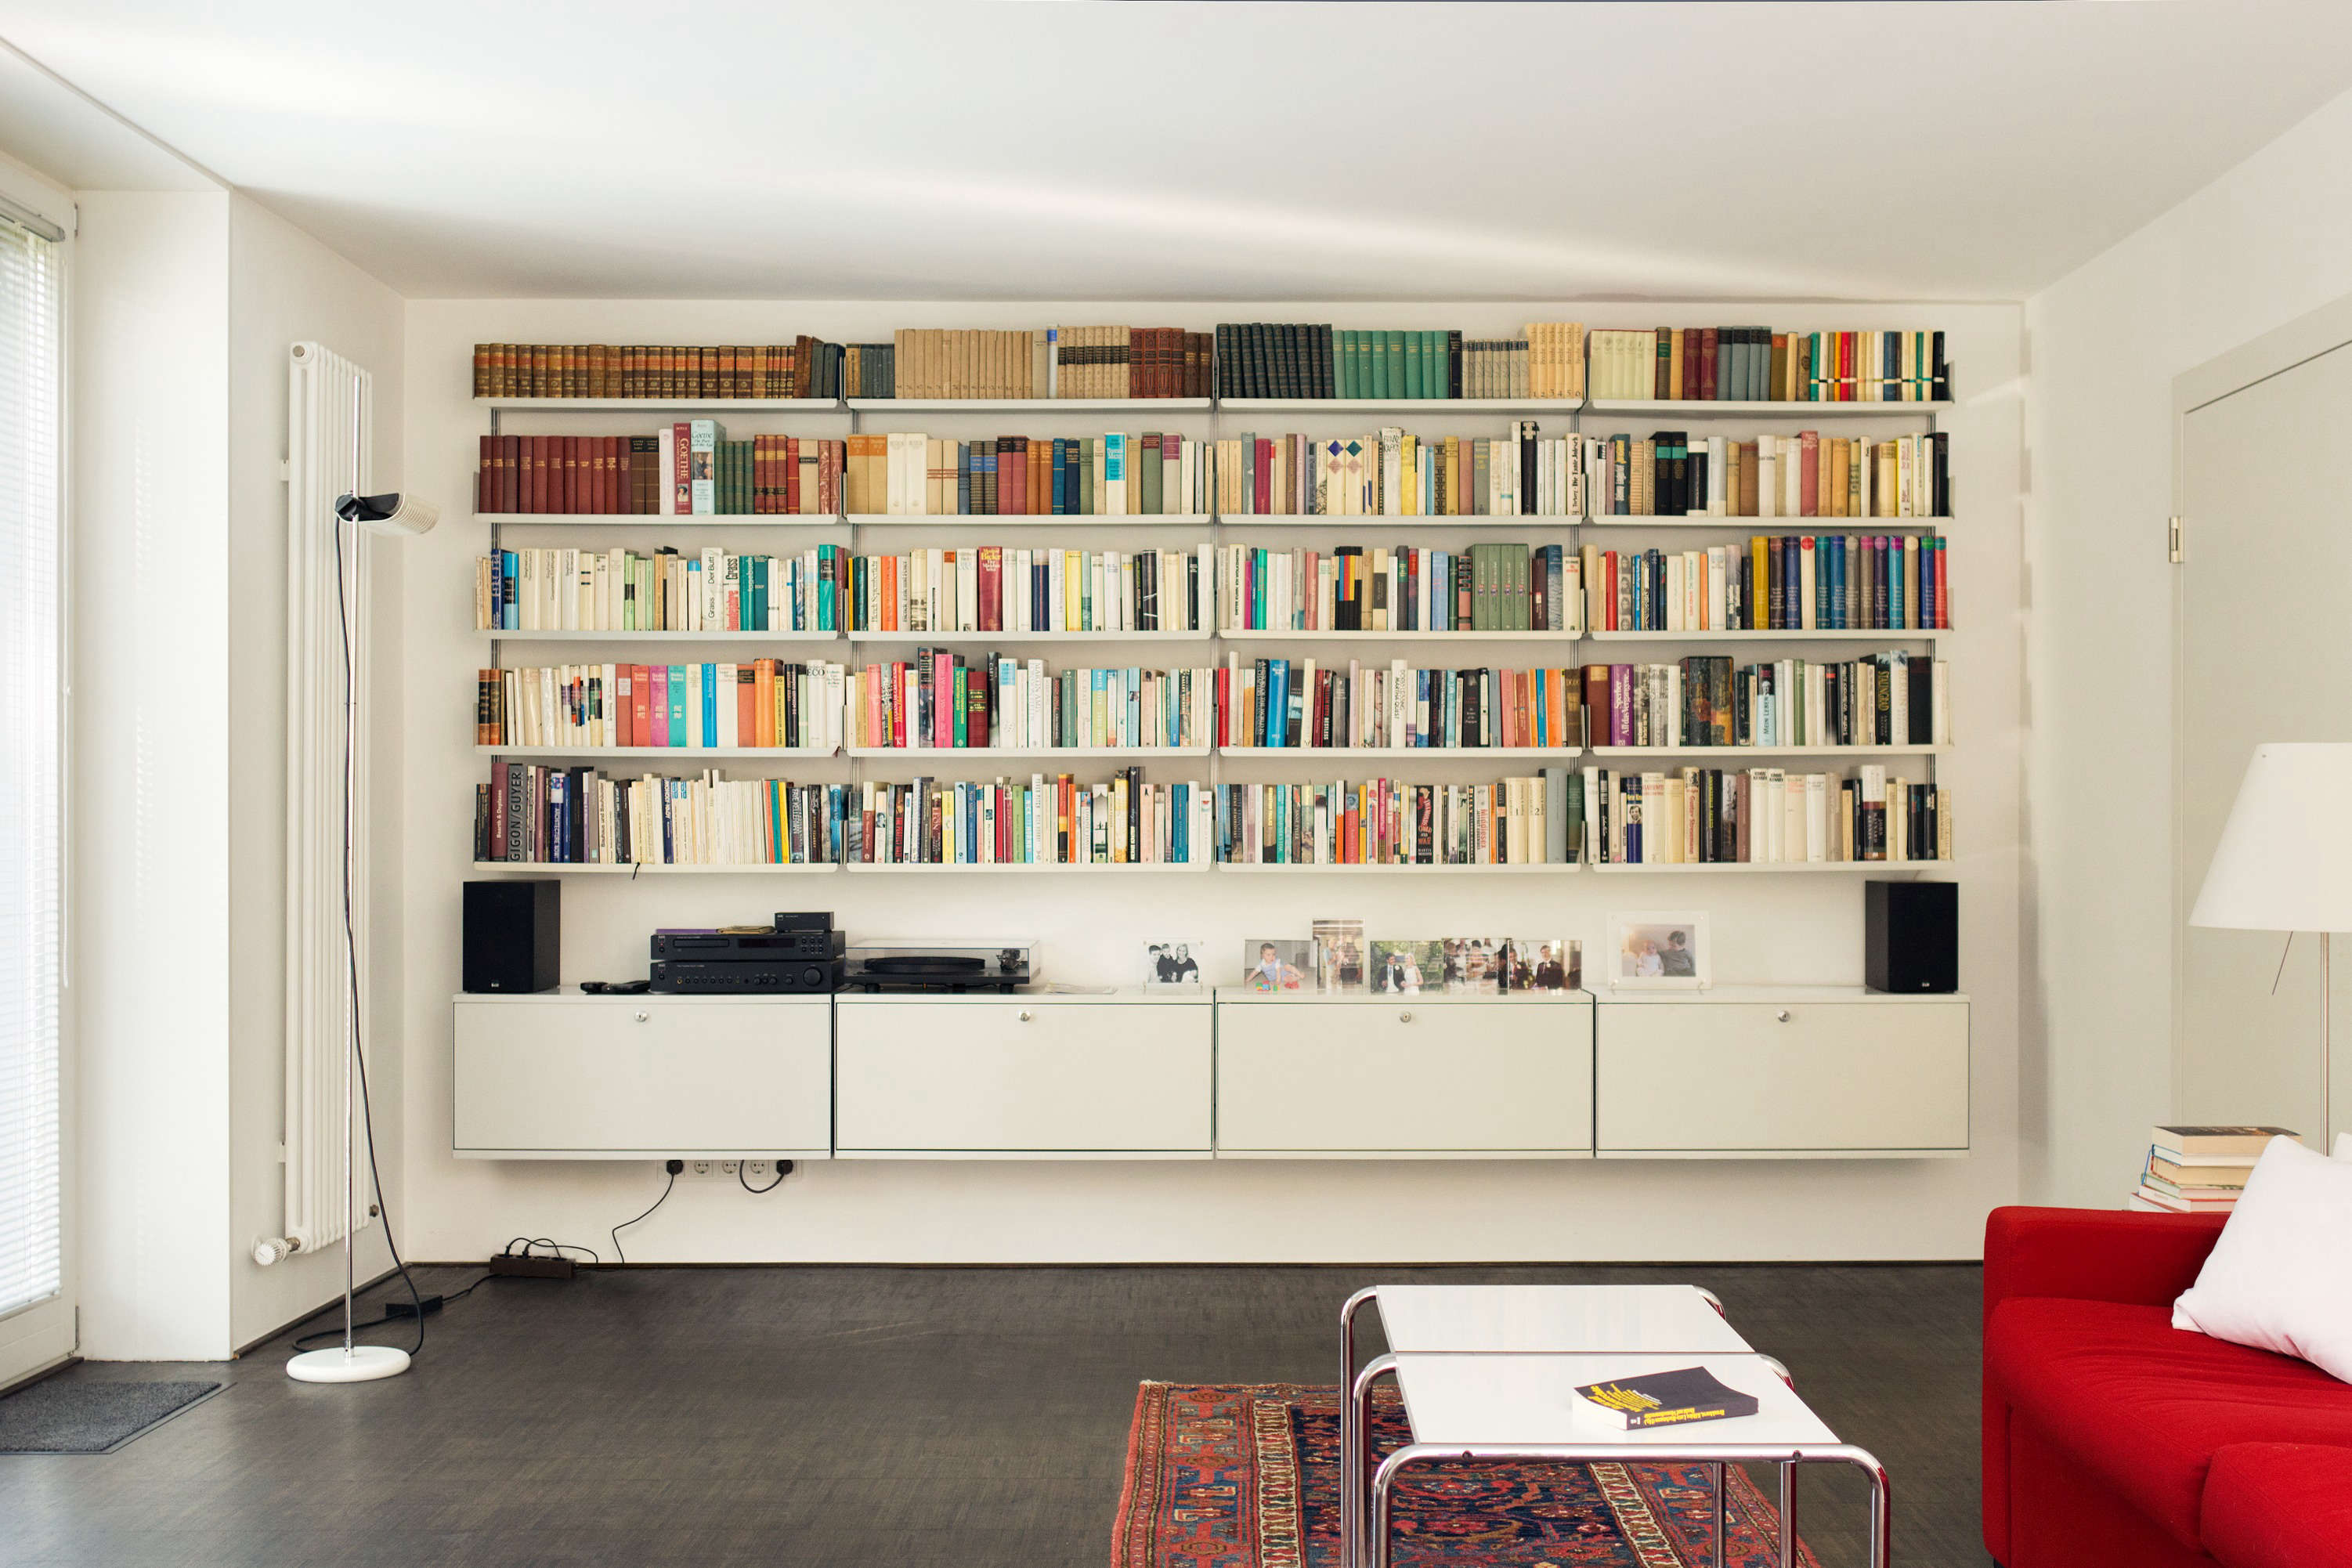 The World\'s Greenest and Most Economical Shelving System? - Remodelista